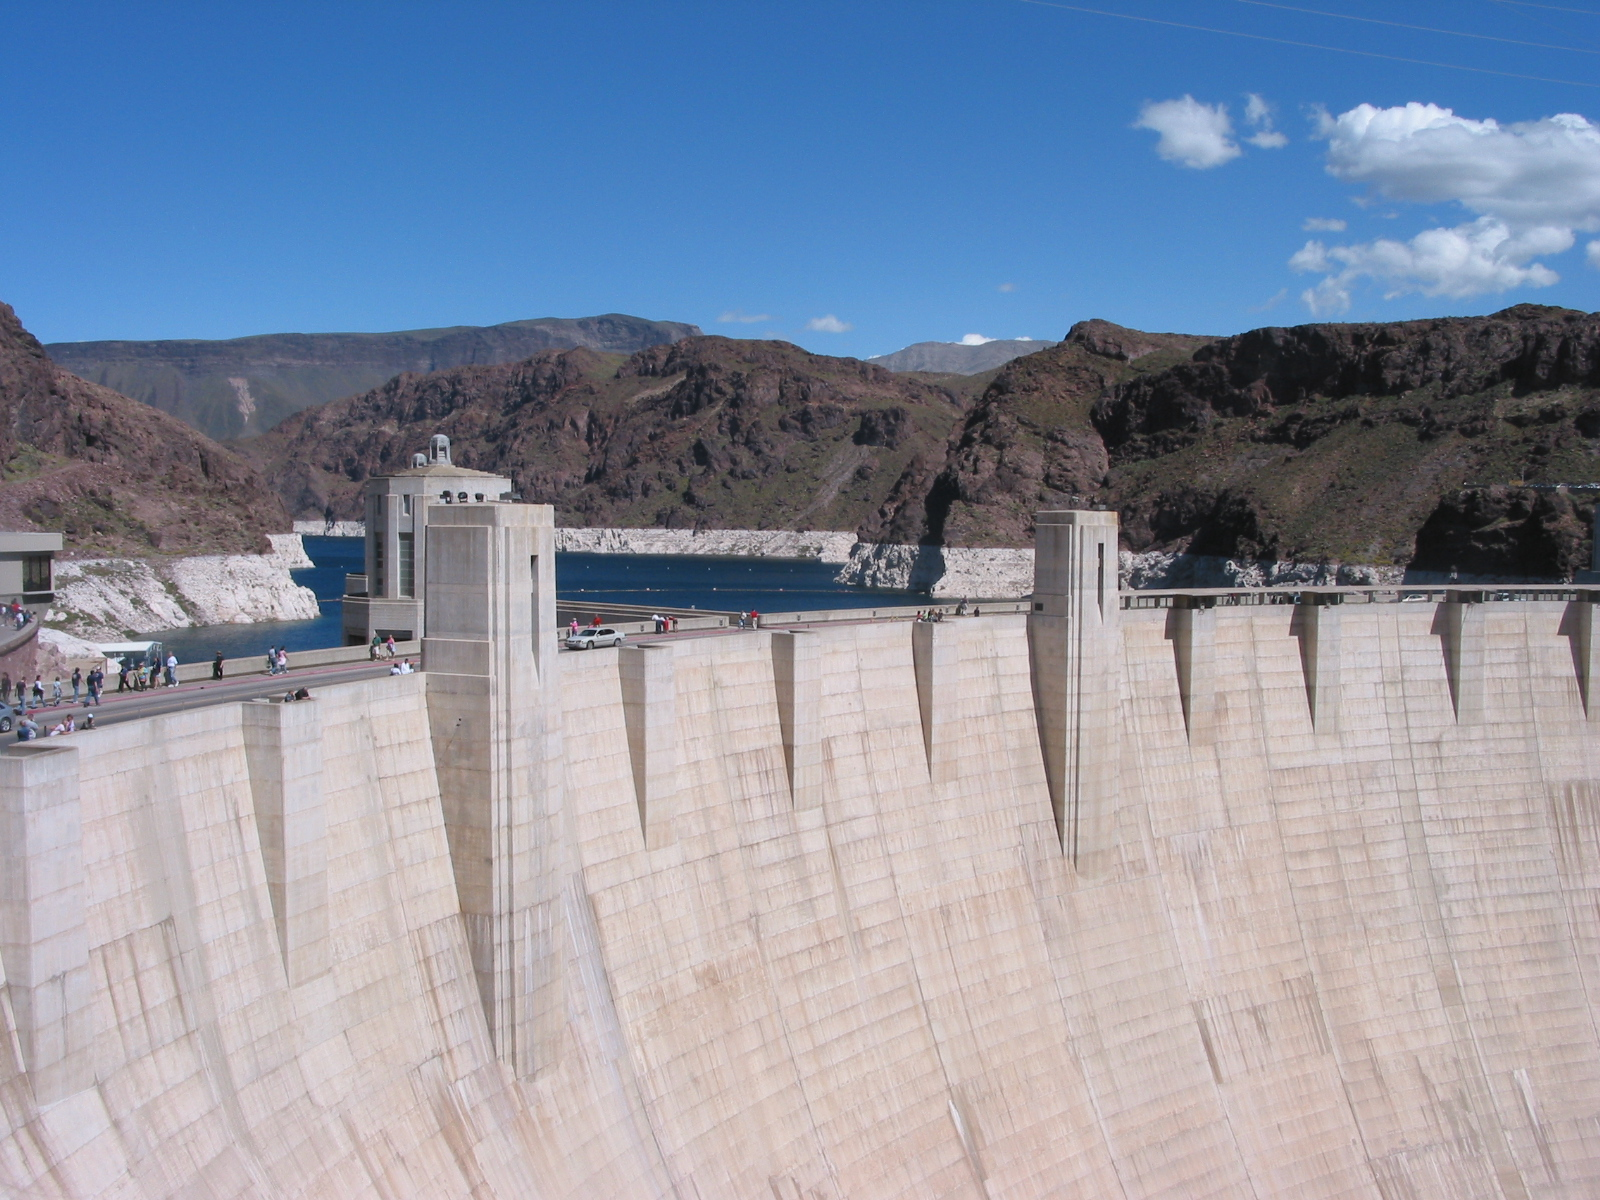 Favorite Structure, Deco: Hoover Dam, from WikiCommons